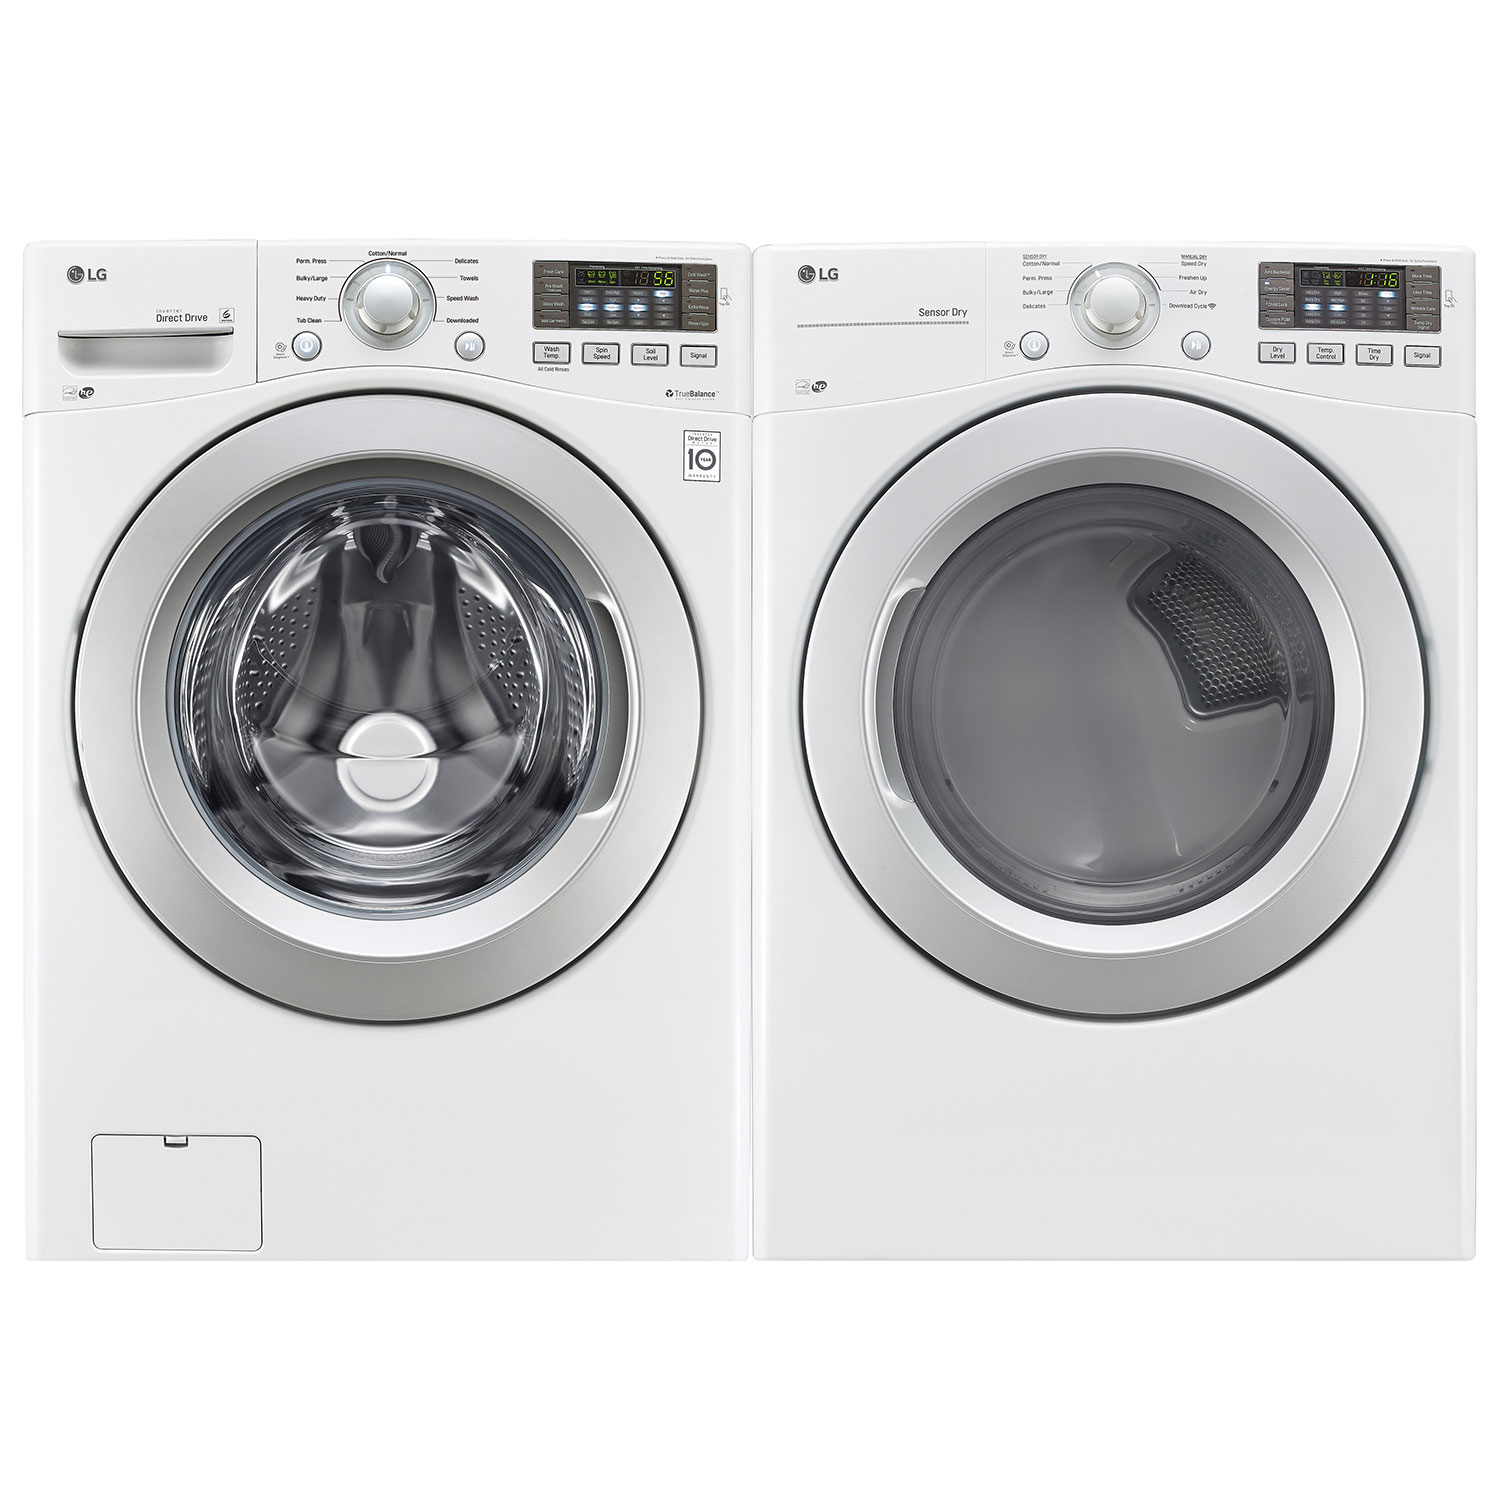 ft high efficiency front load washer wm3270cw white washers best buy canada